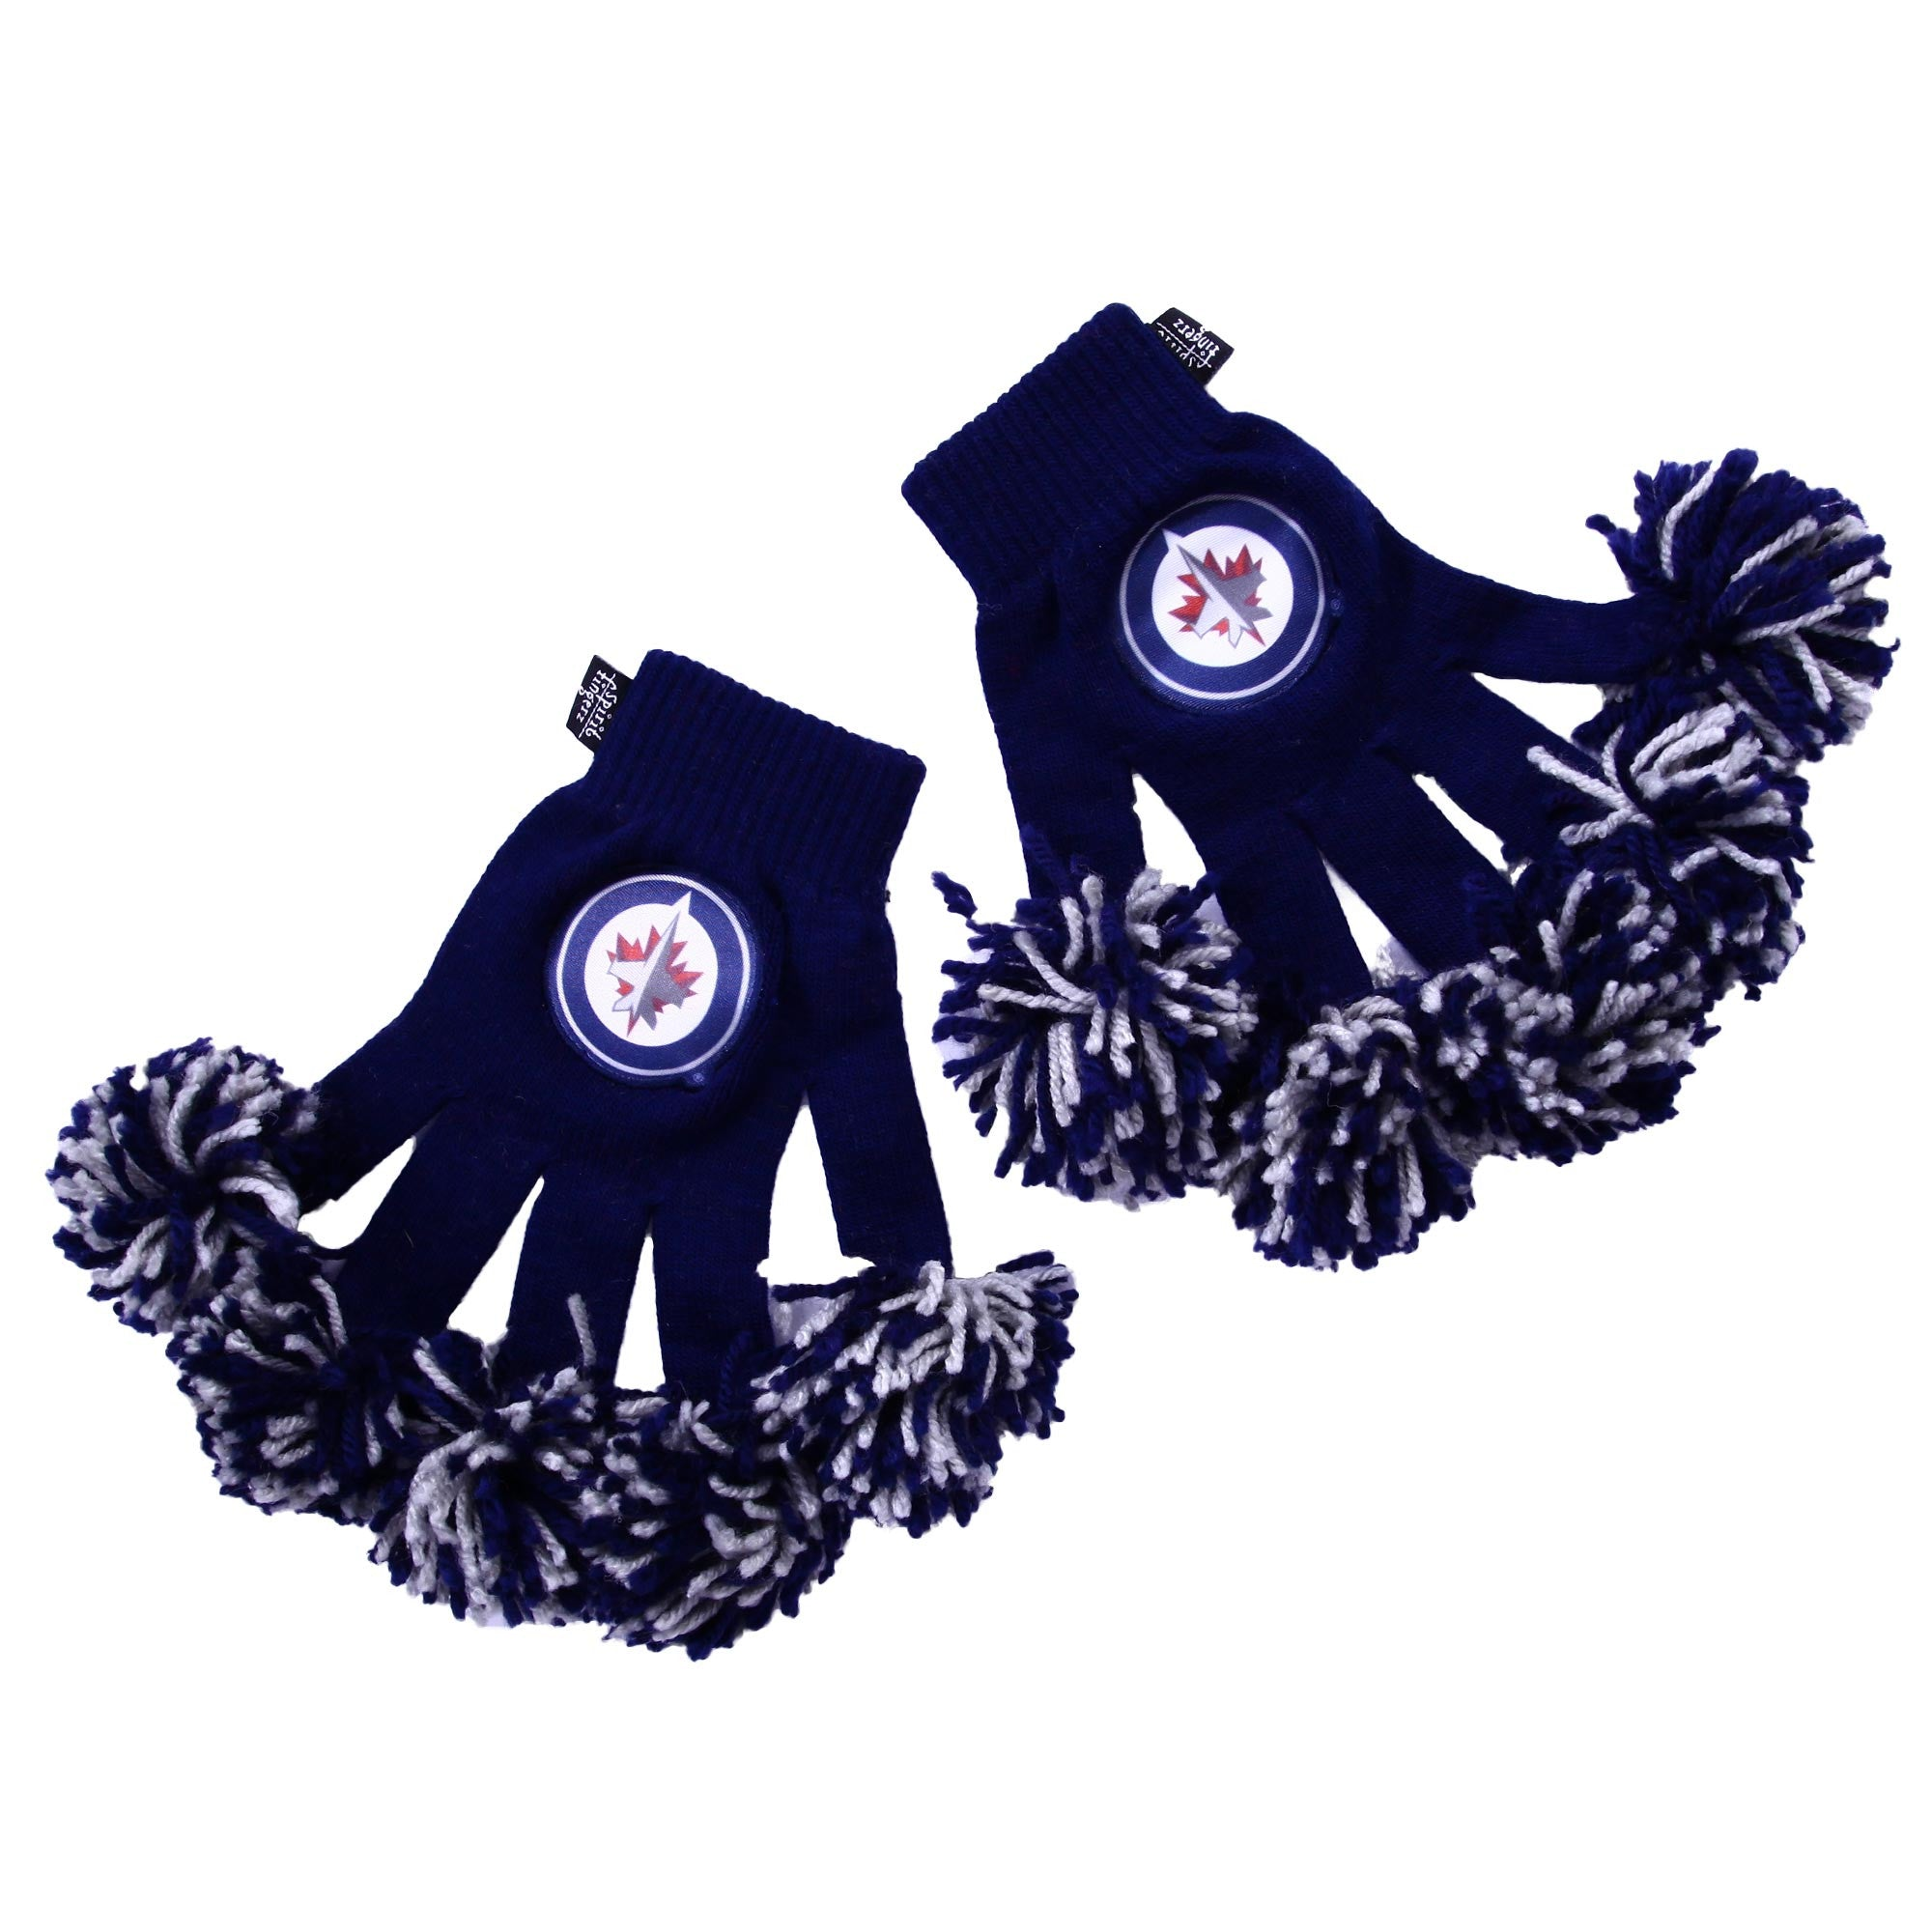 Winnipeg Jets NHL Spirit Fingerz Cheerleading Pom-Pom Gloves